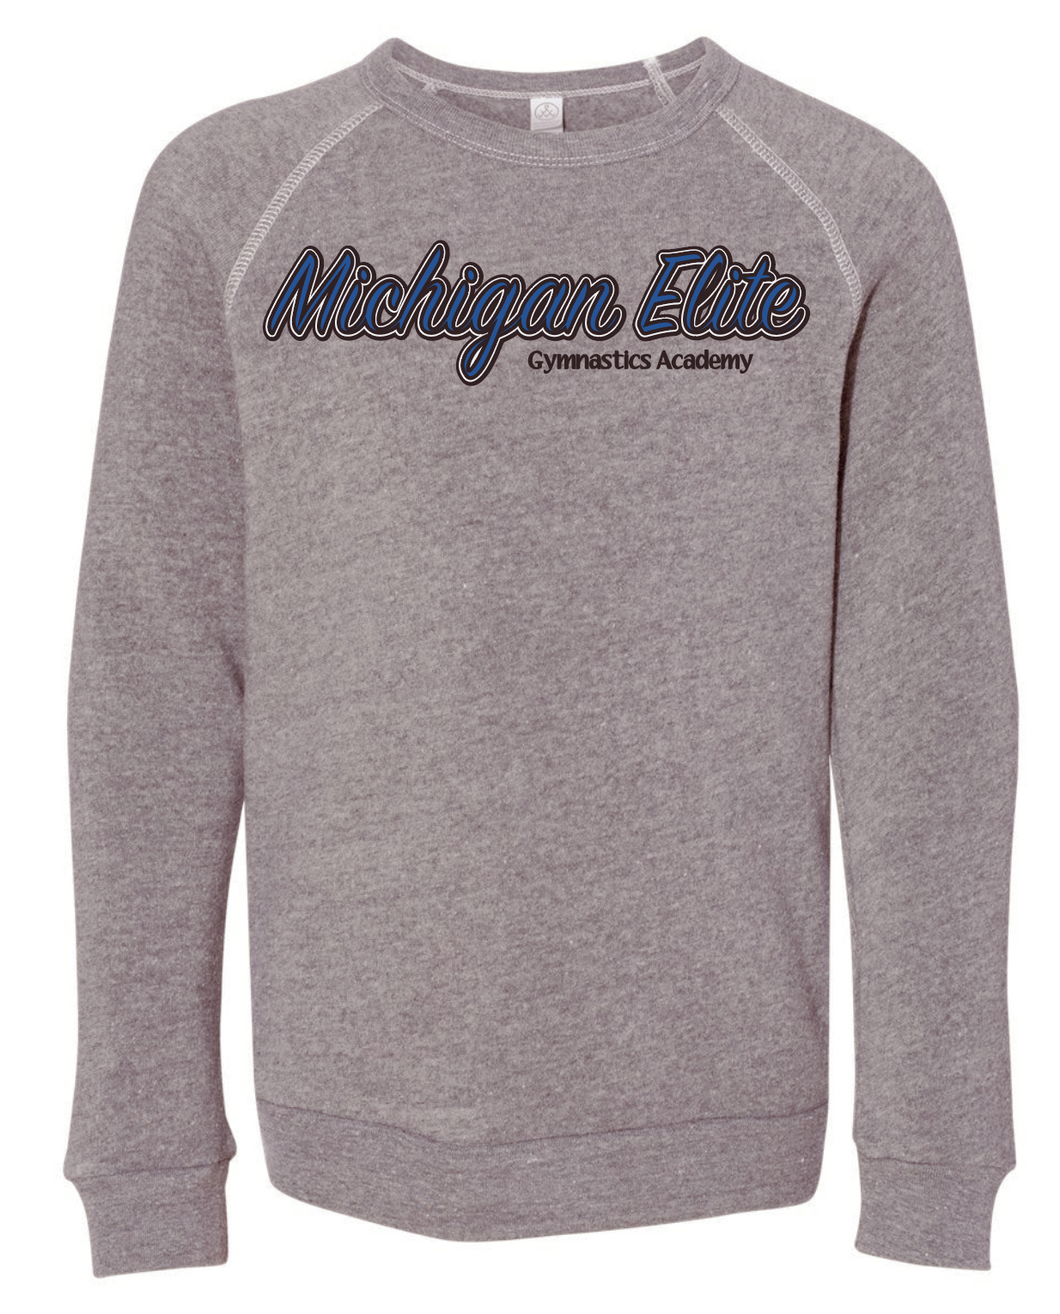 Michigan Elite Gymnastics Academy - Youth Crew Neck Sweatshirt